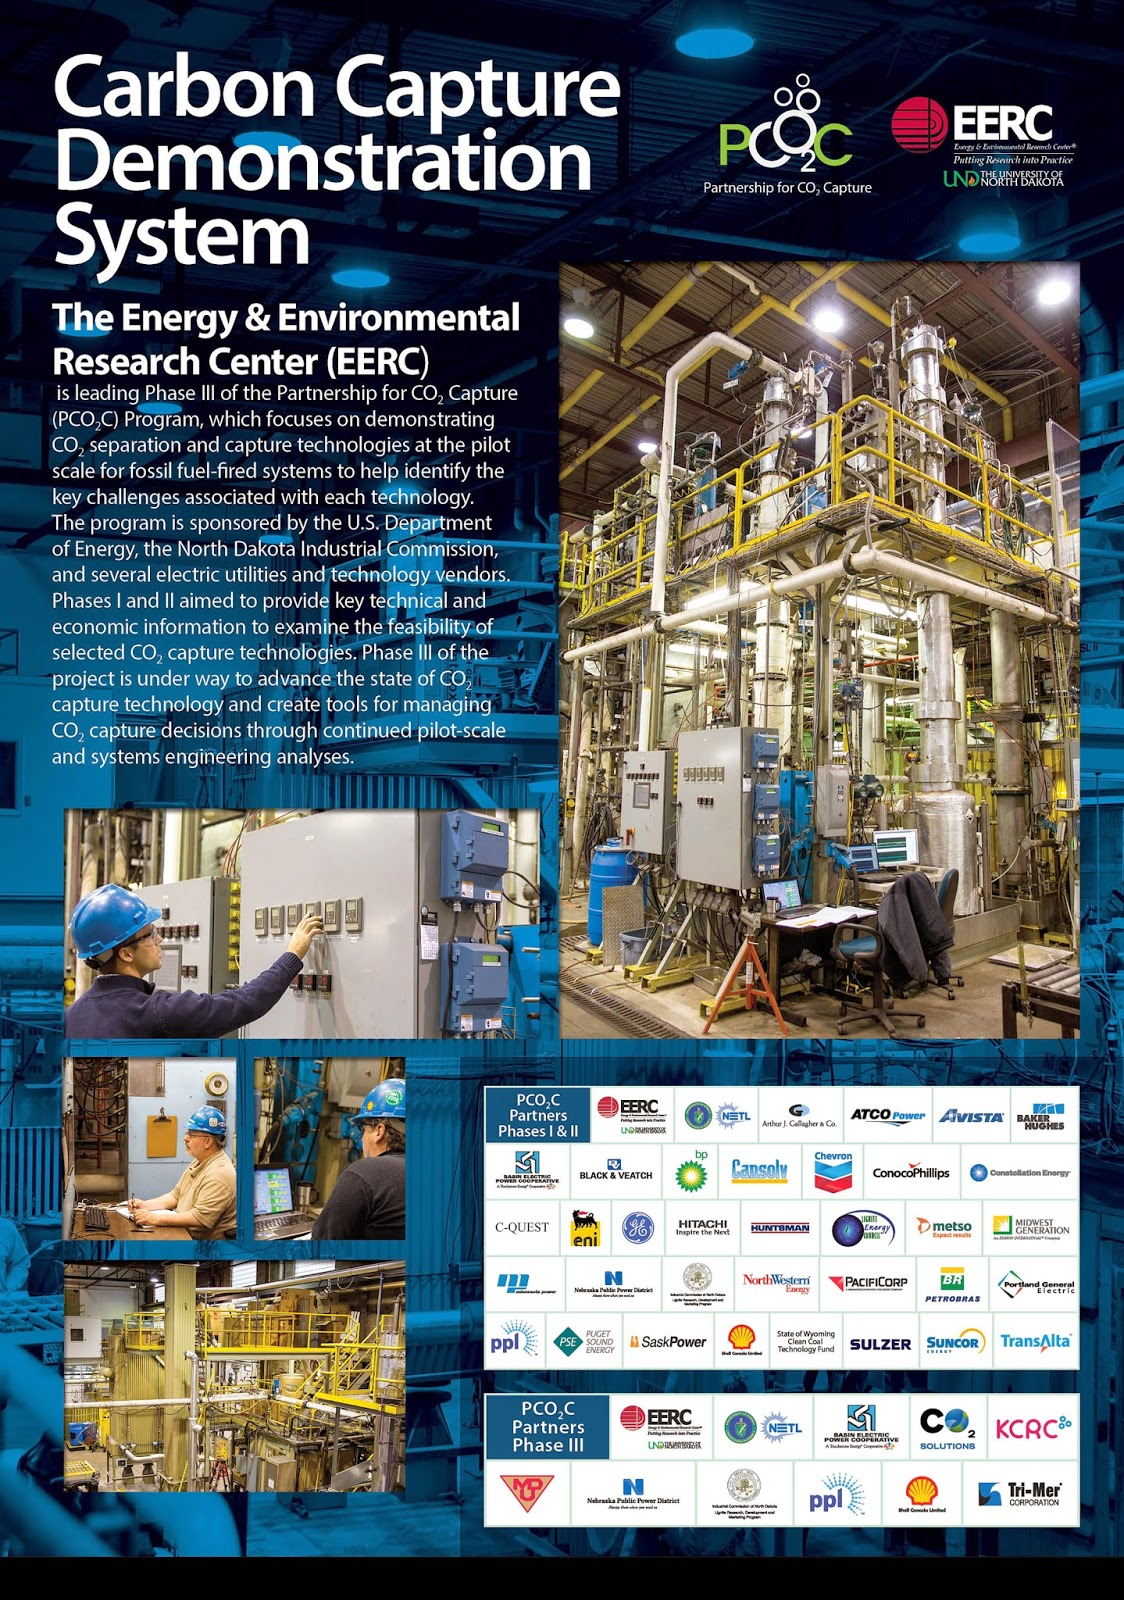 Carbon Capture Demonstration System